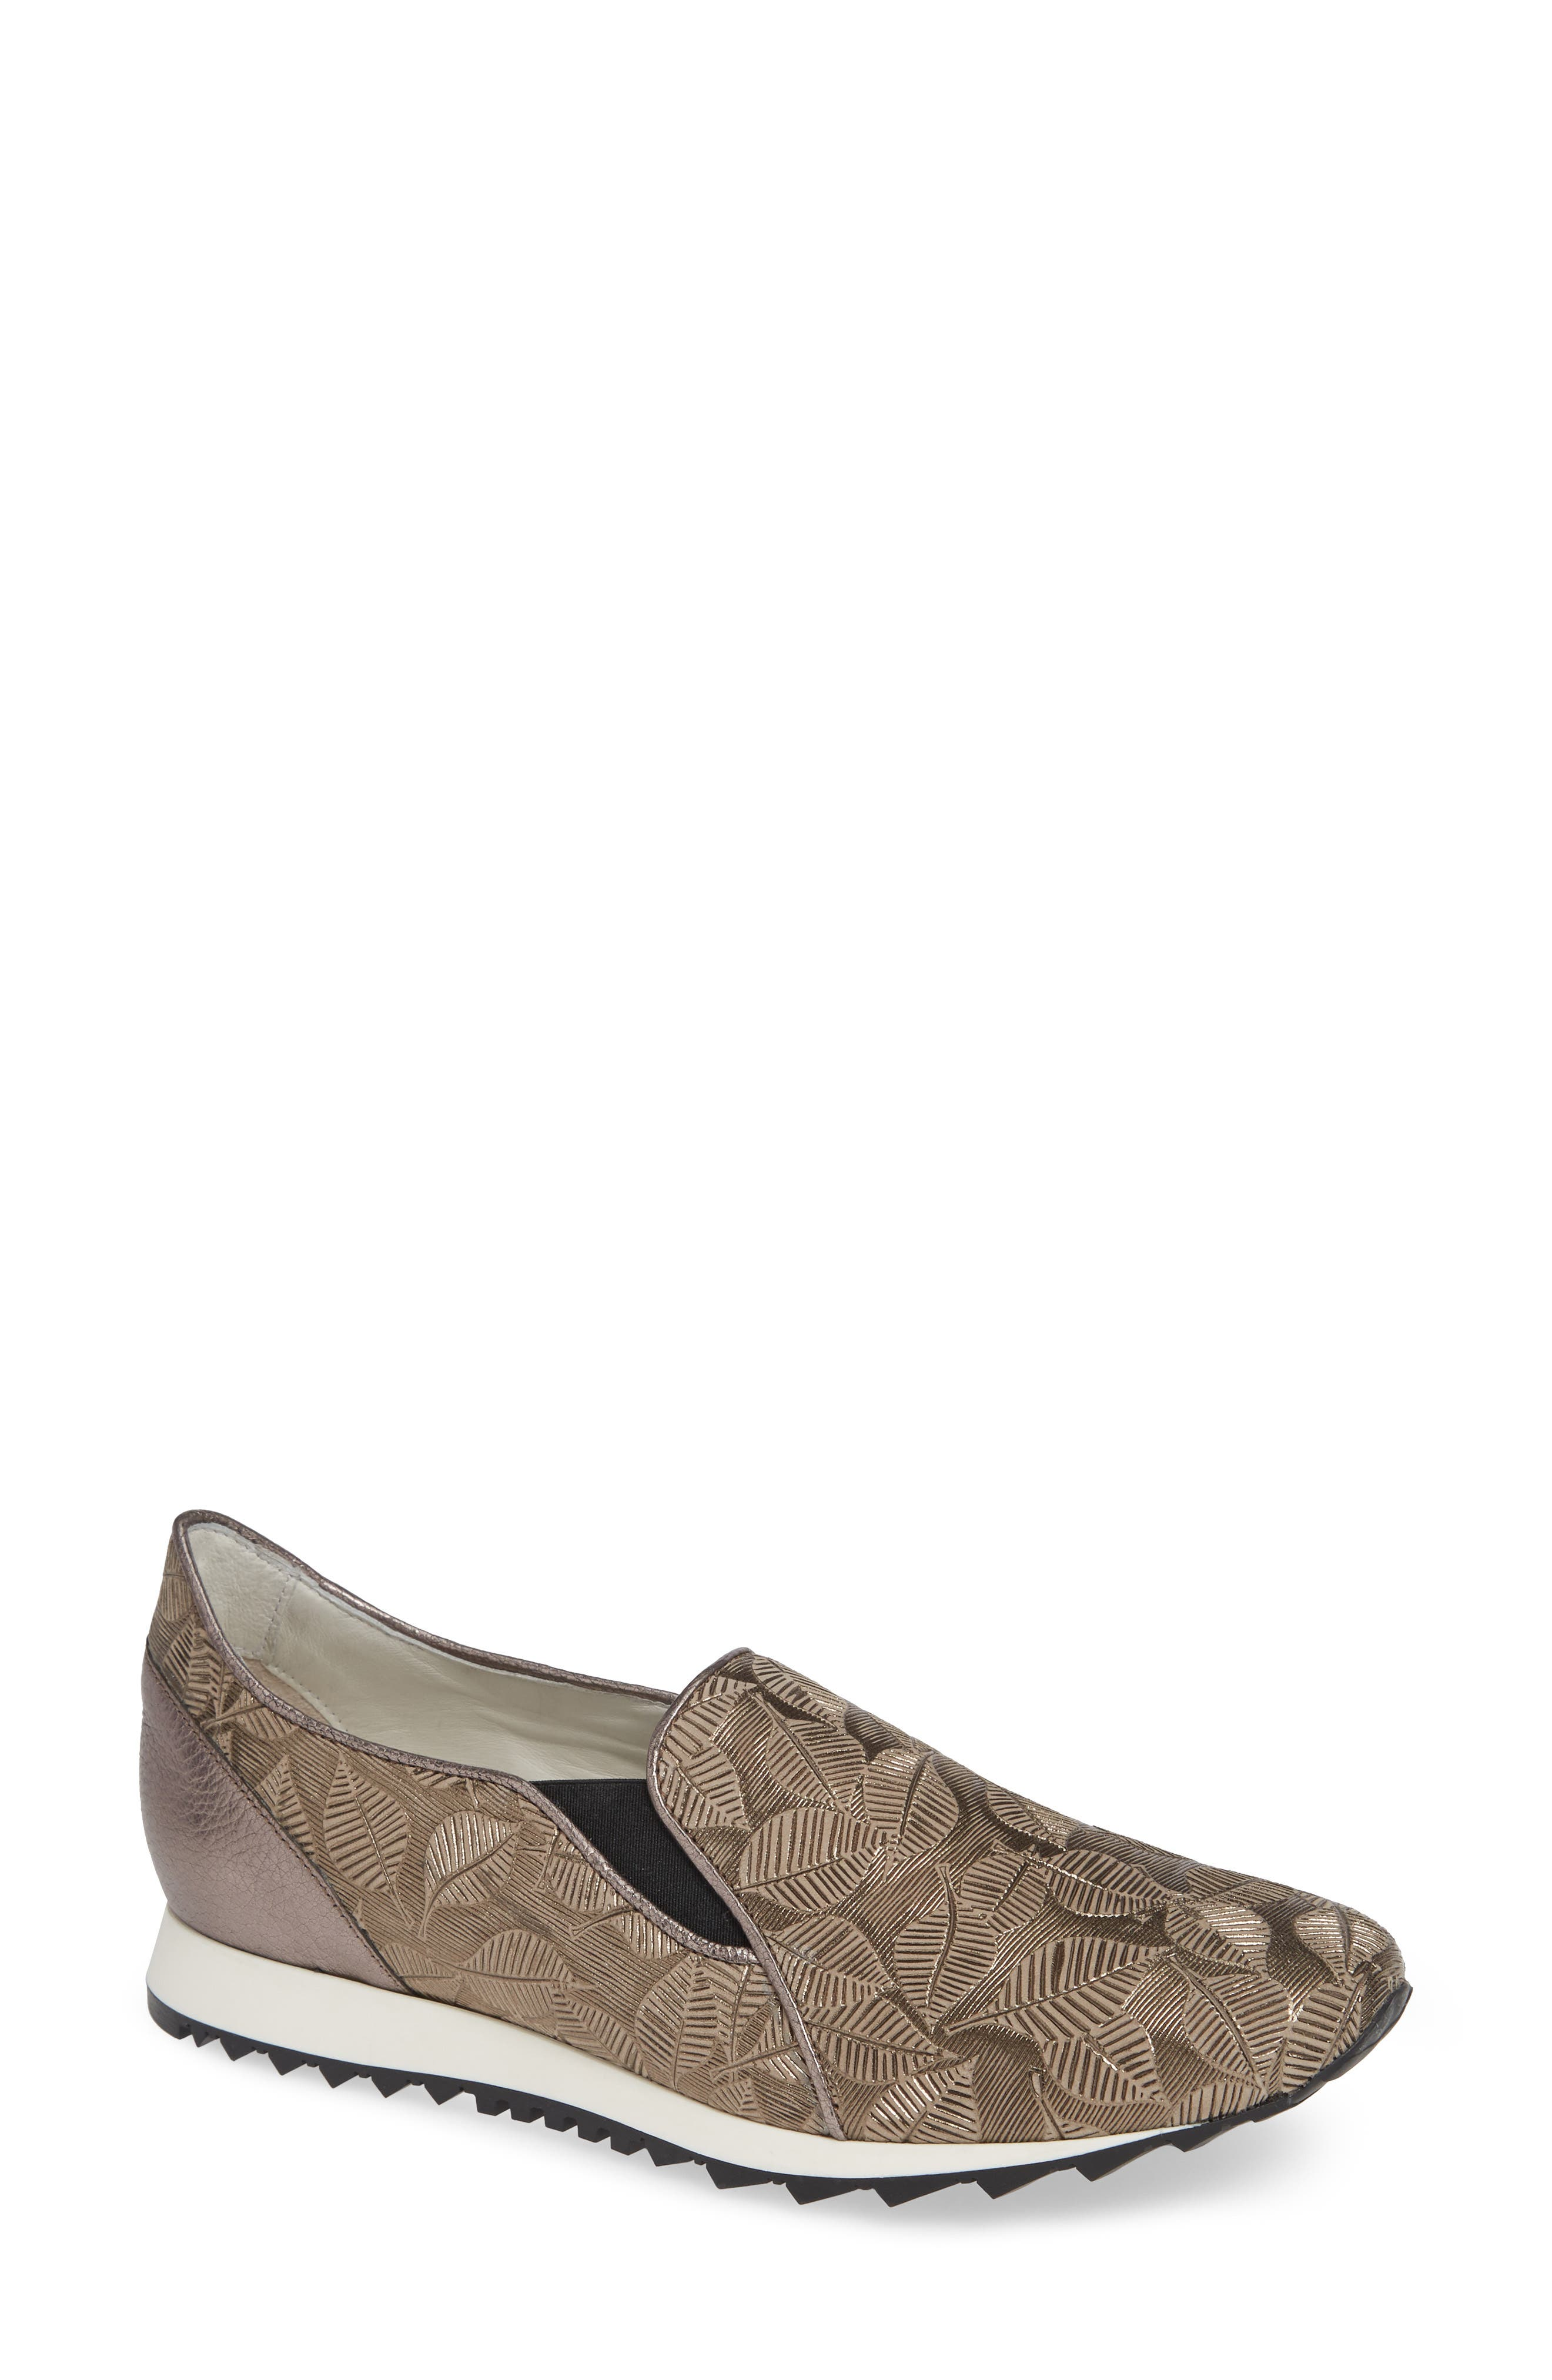 Francia Slip-On Sneaker, Main, color, TAUPE LEATHER